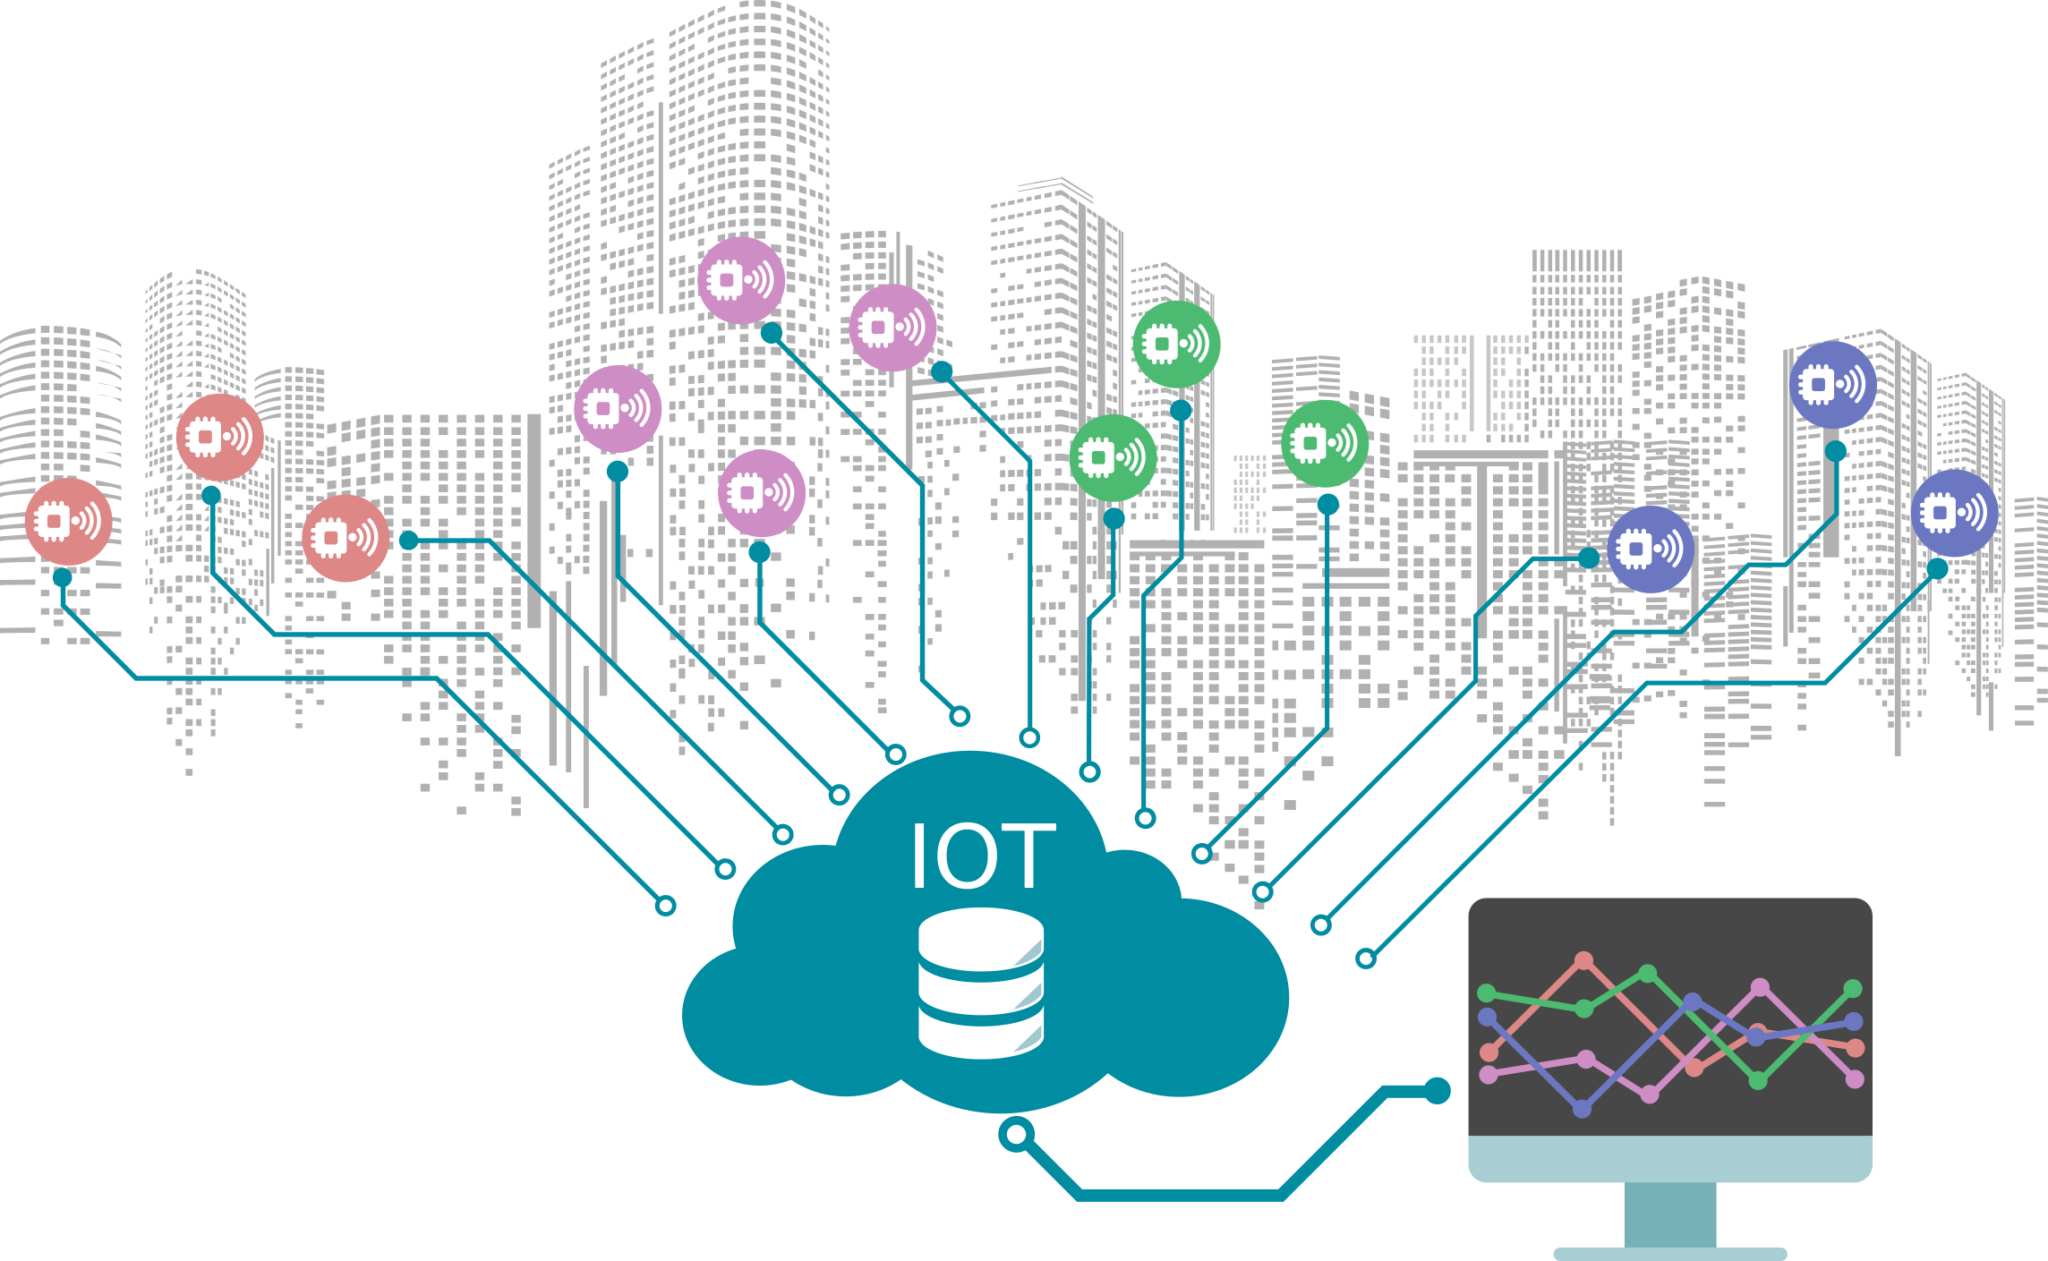 iot cloud with a city in the background